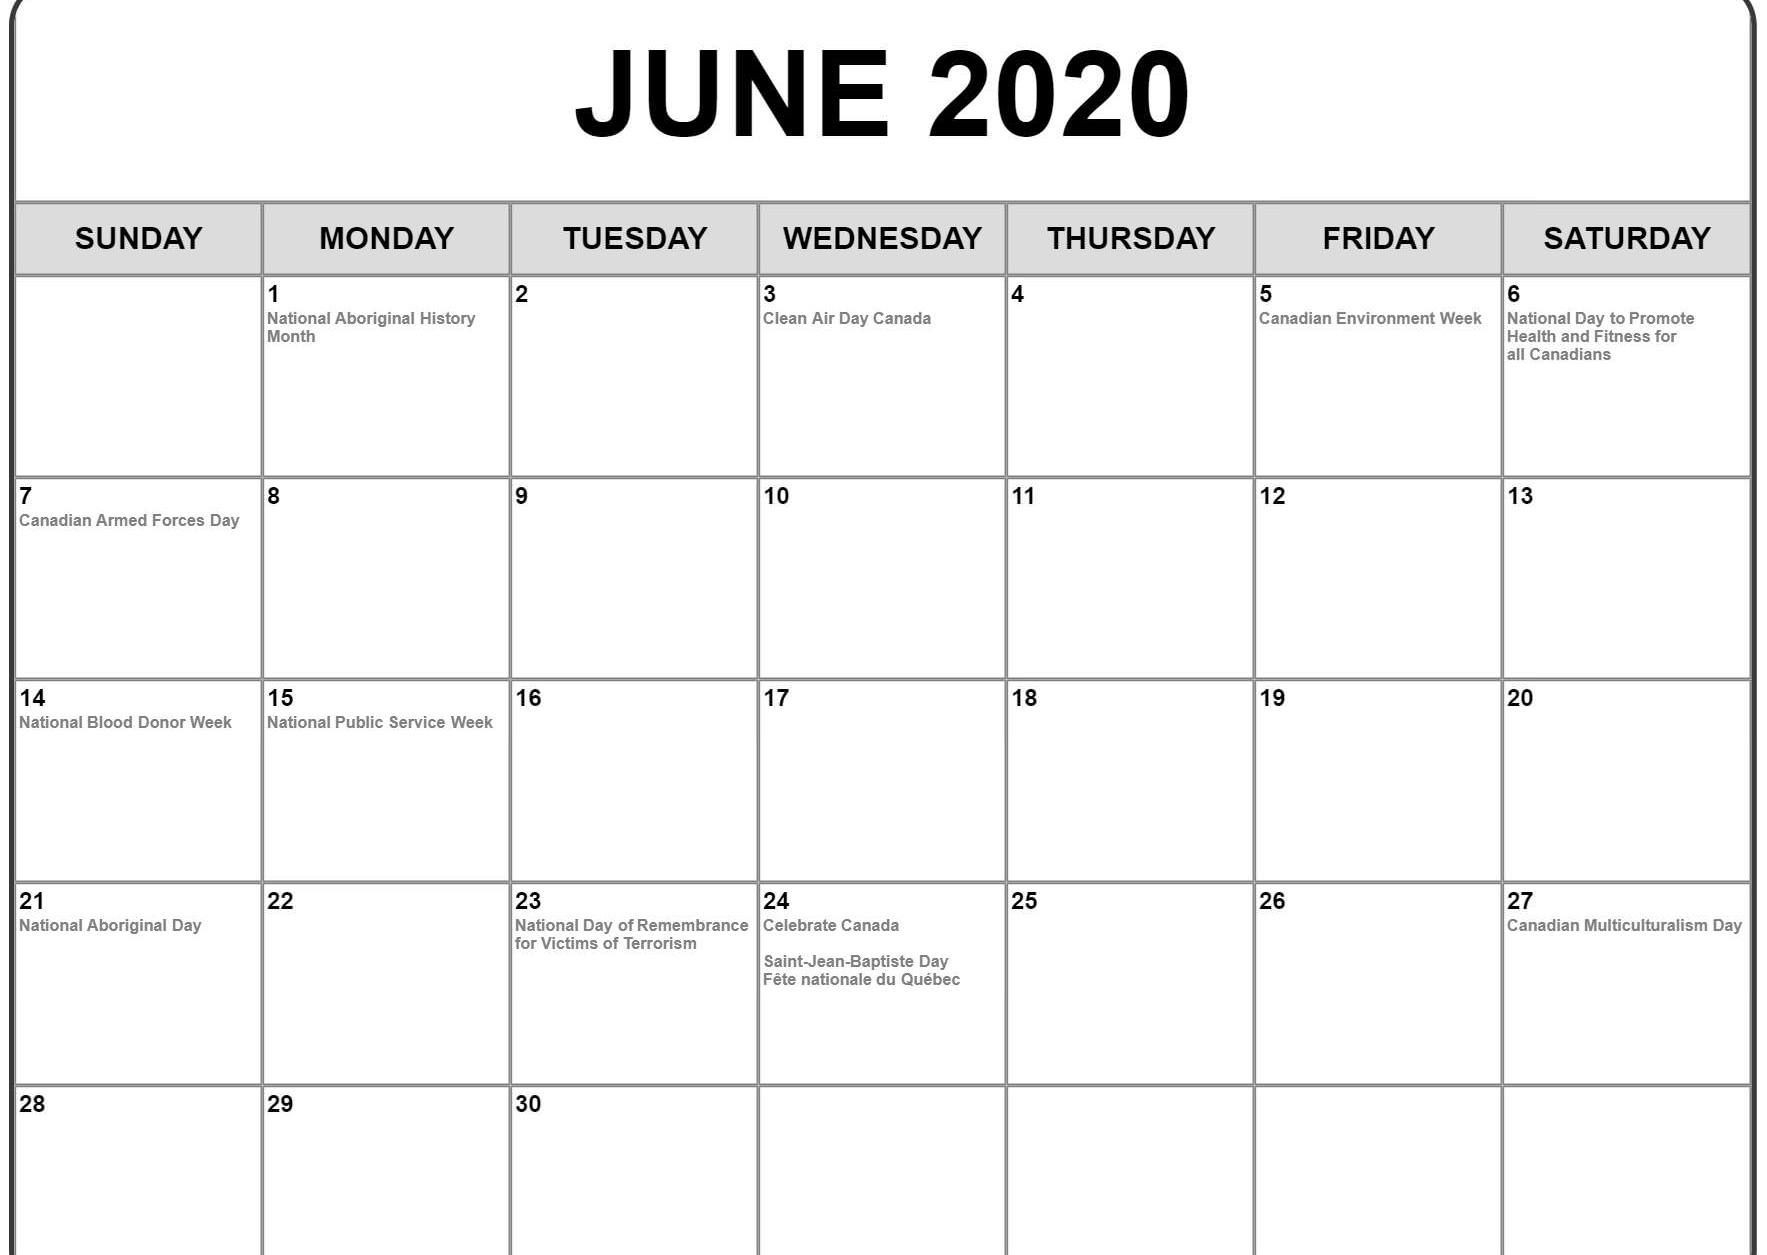 June 2020 Calendar With Holidays | Awesome Free Printable  National Day Calendar June 2020